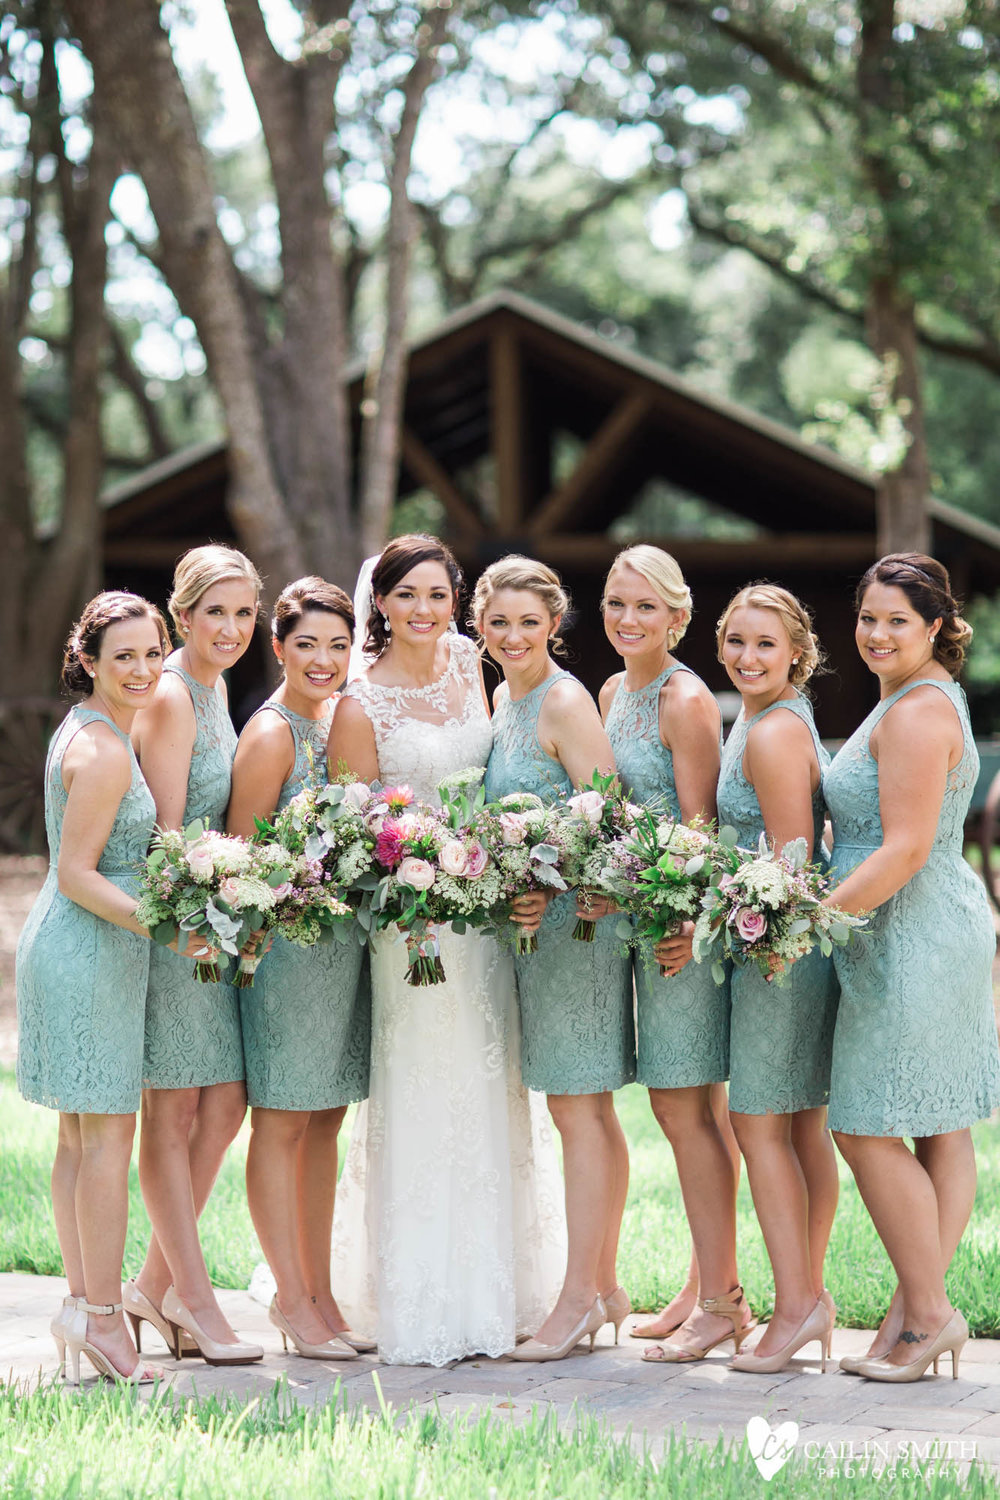 Bethany_Kyle_Bowing_Oaks_Plantation_Wedding_Photography_0054.jpg